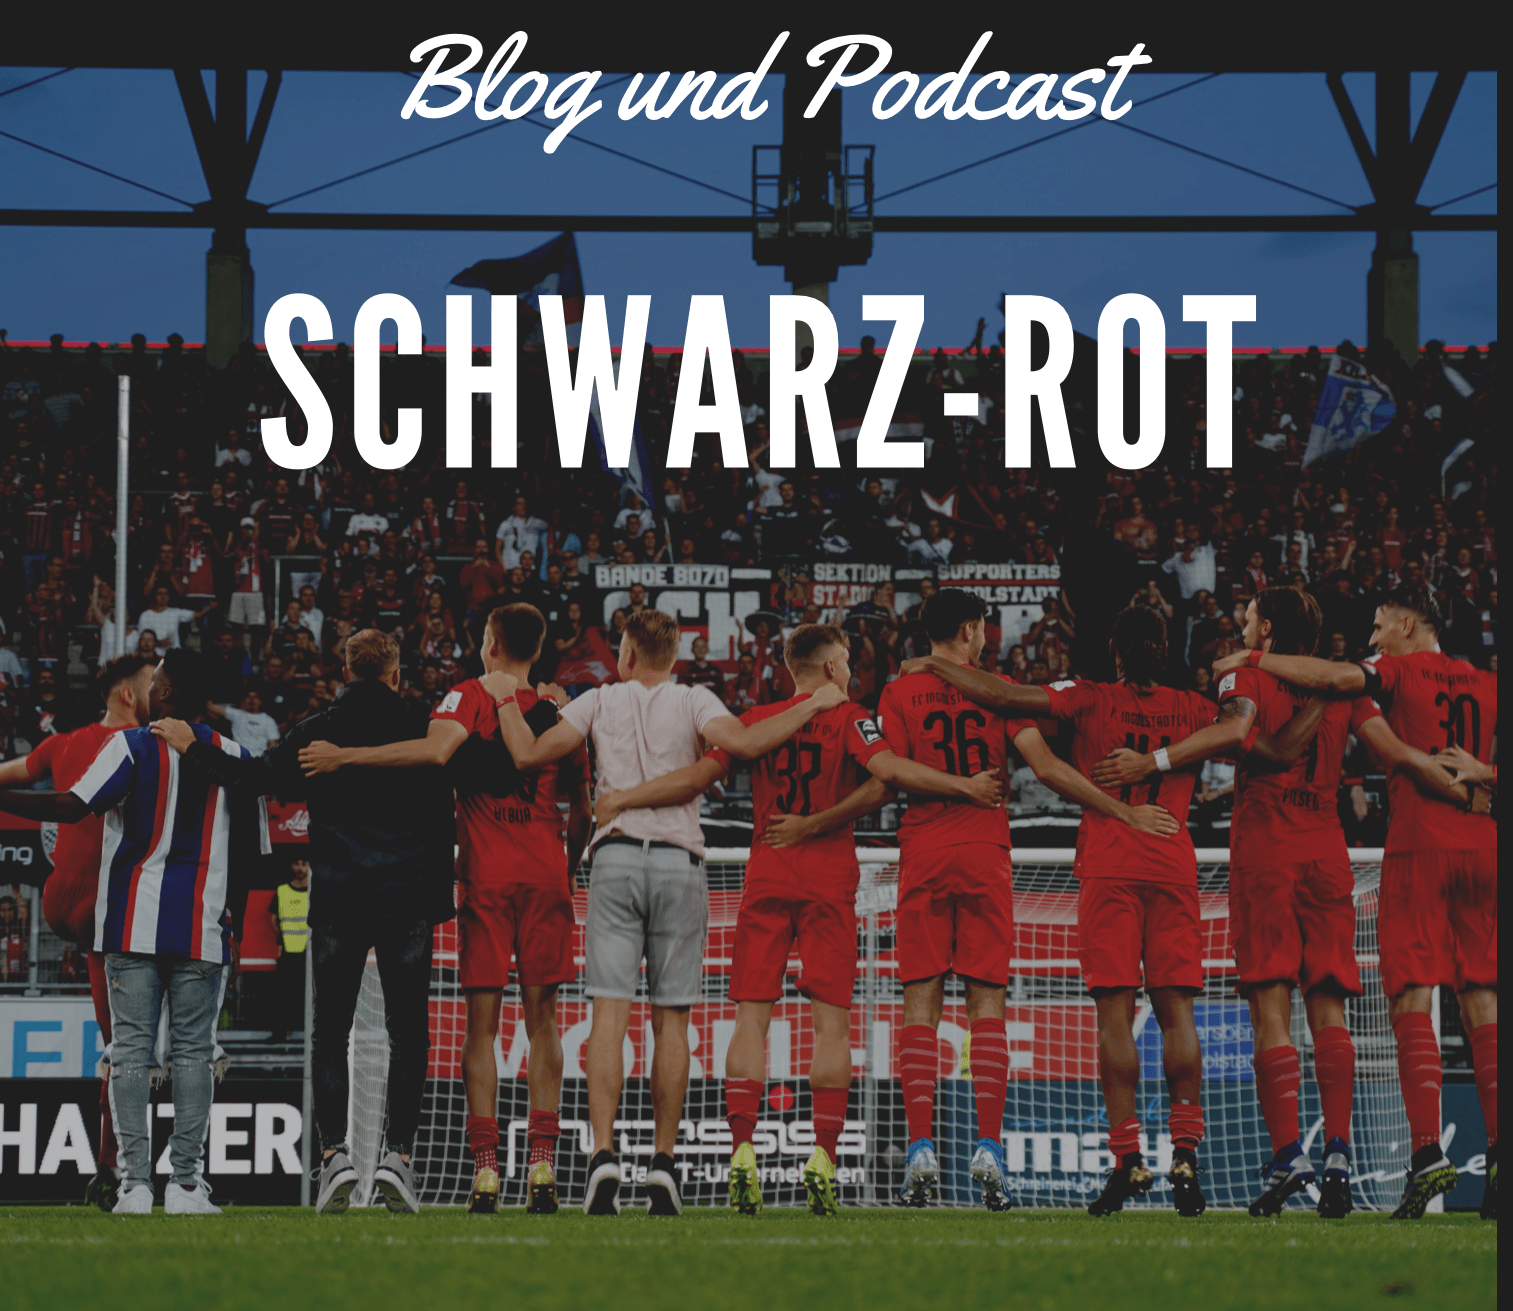 Schwarz-Rot Blog & Podcast